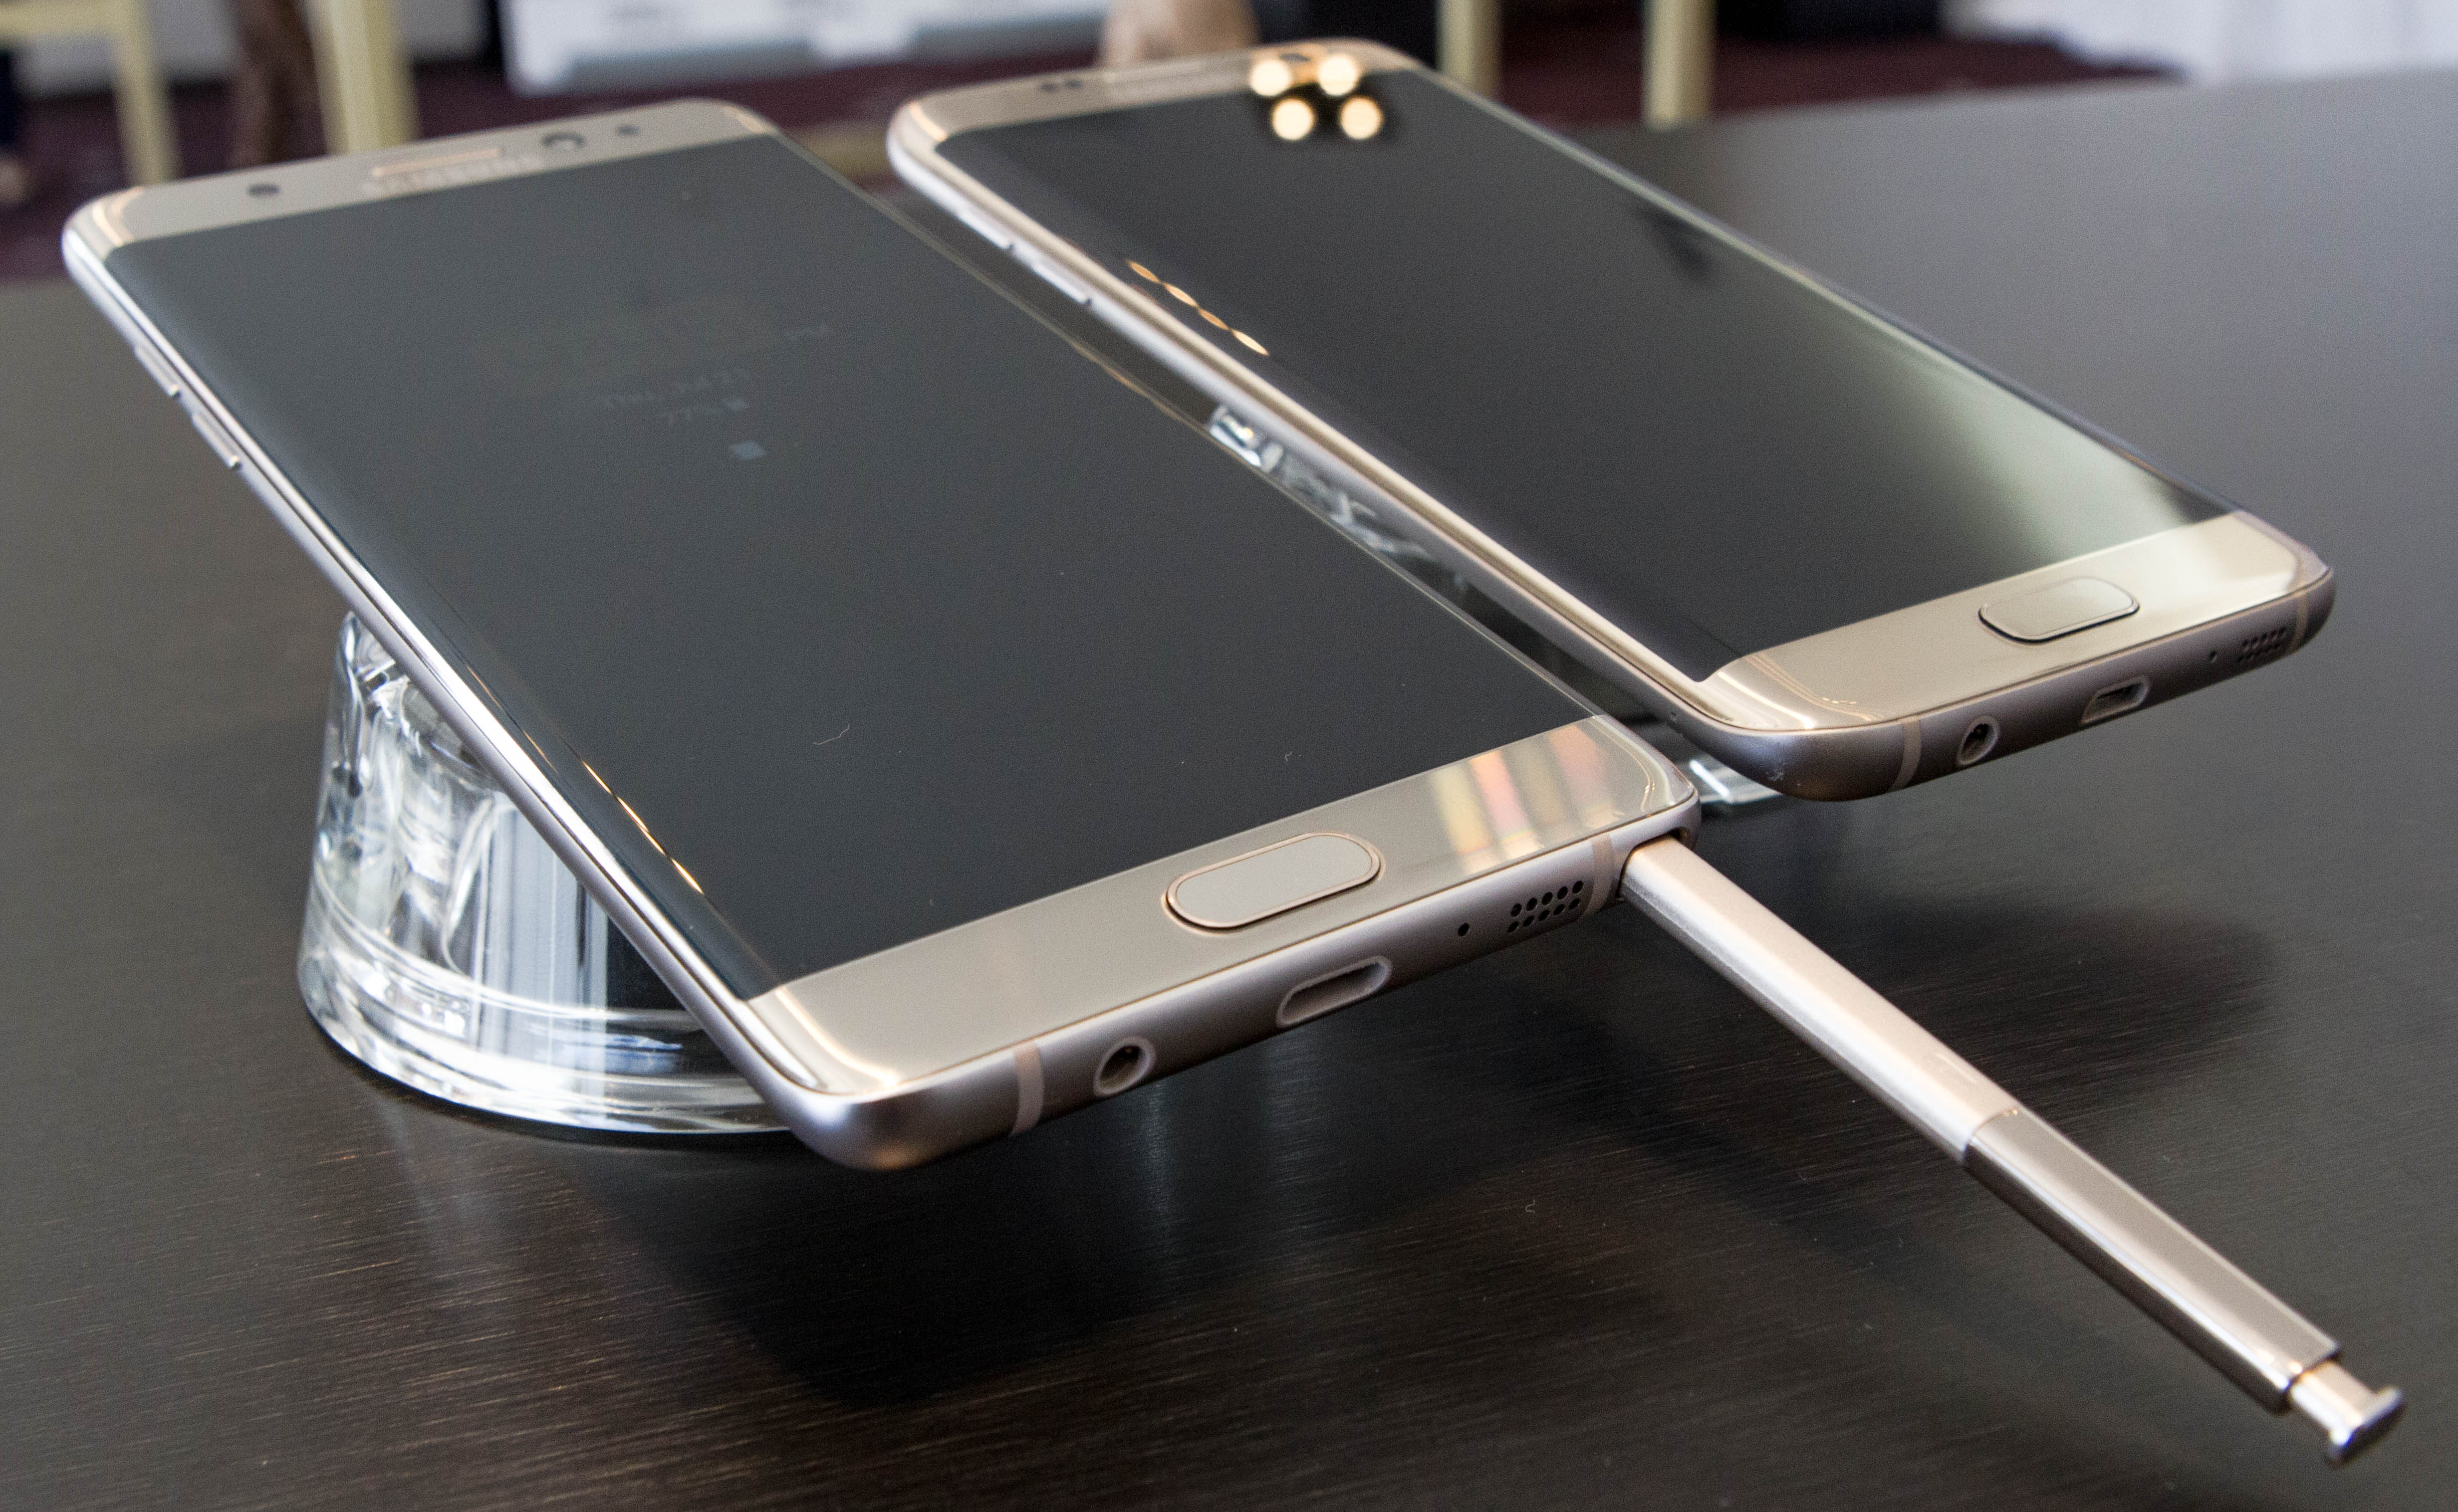 The Samsung Galaxy Note7 next to the S7 edge.